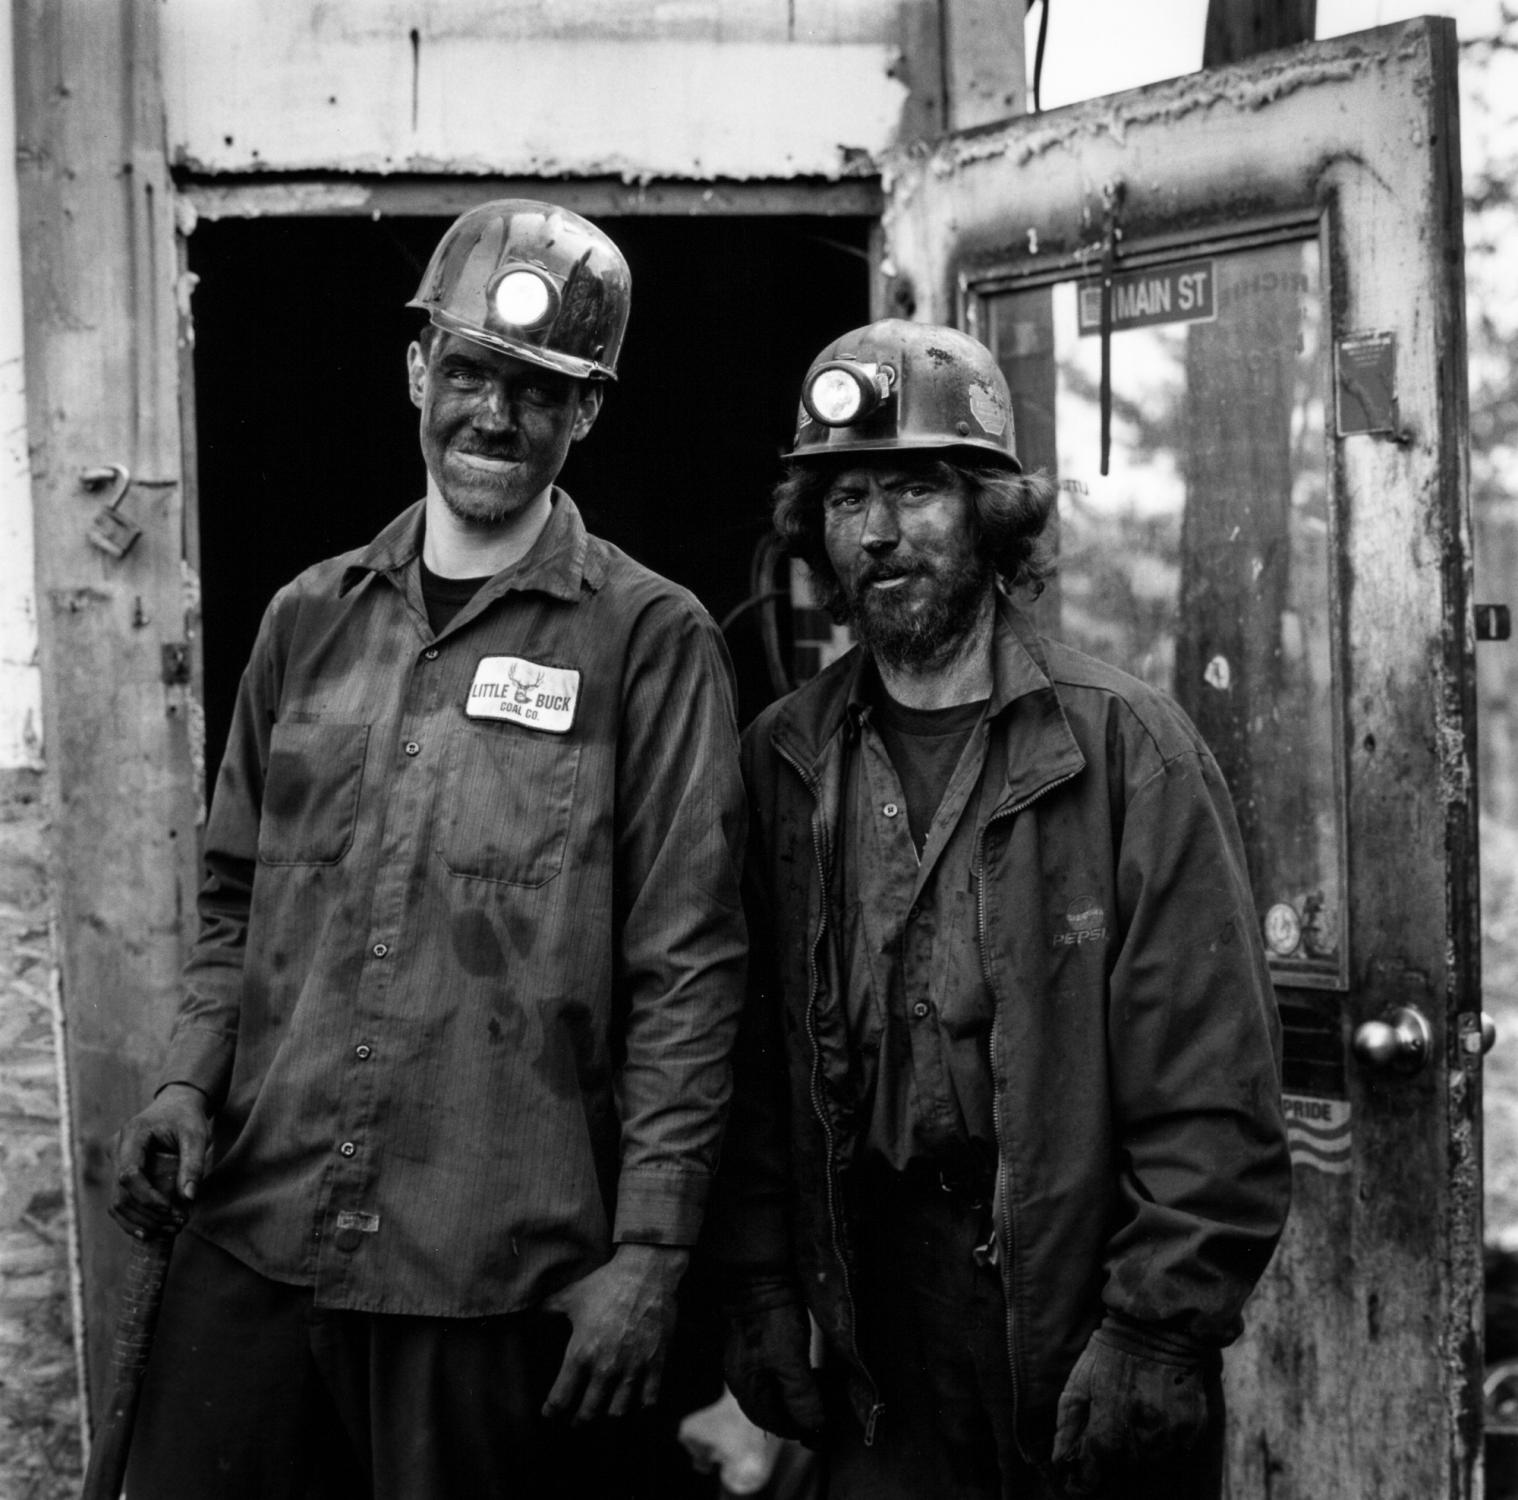 End of Shift, old Little Buck Mine